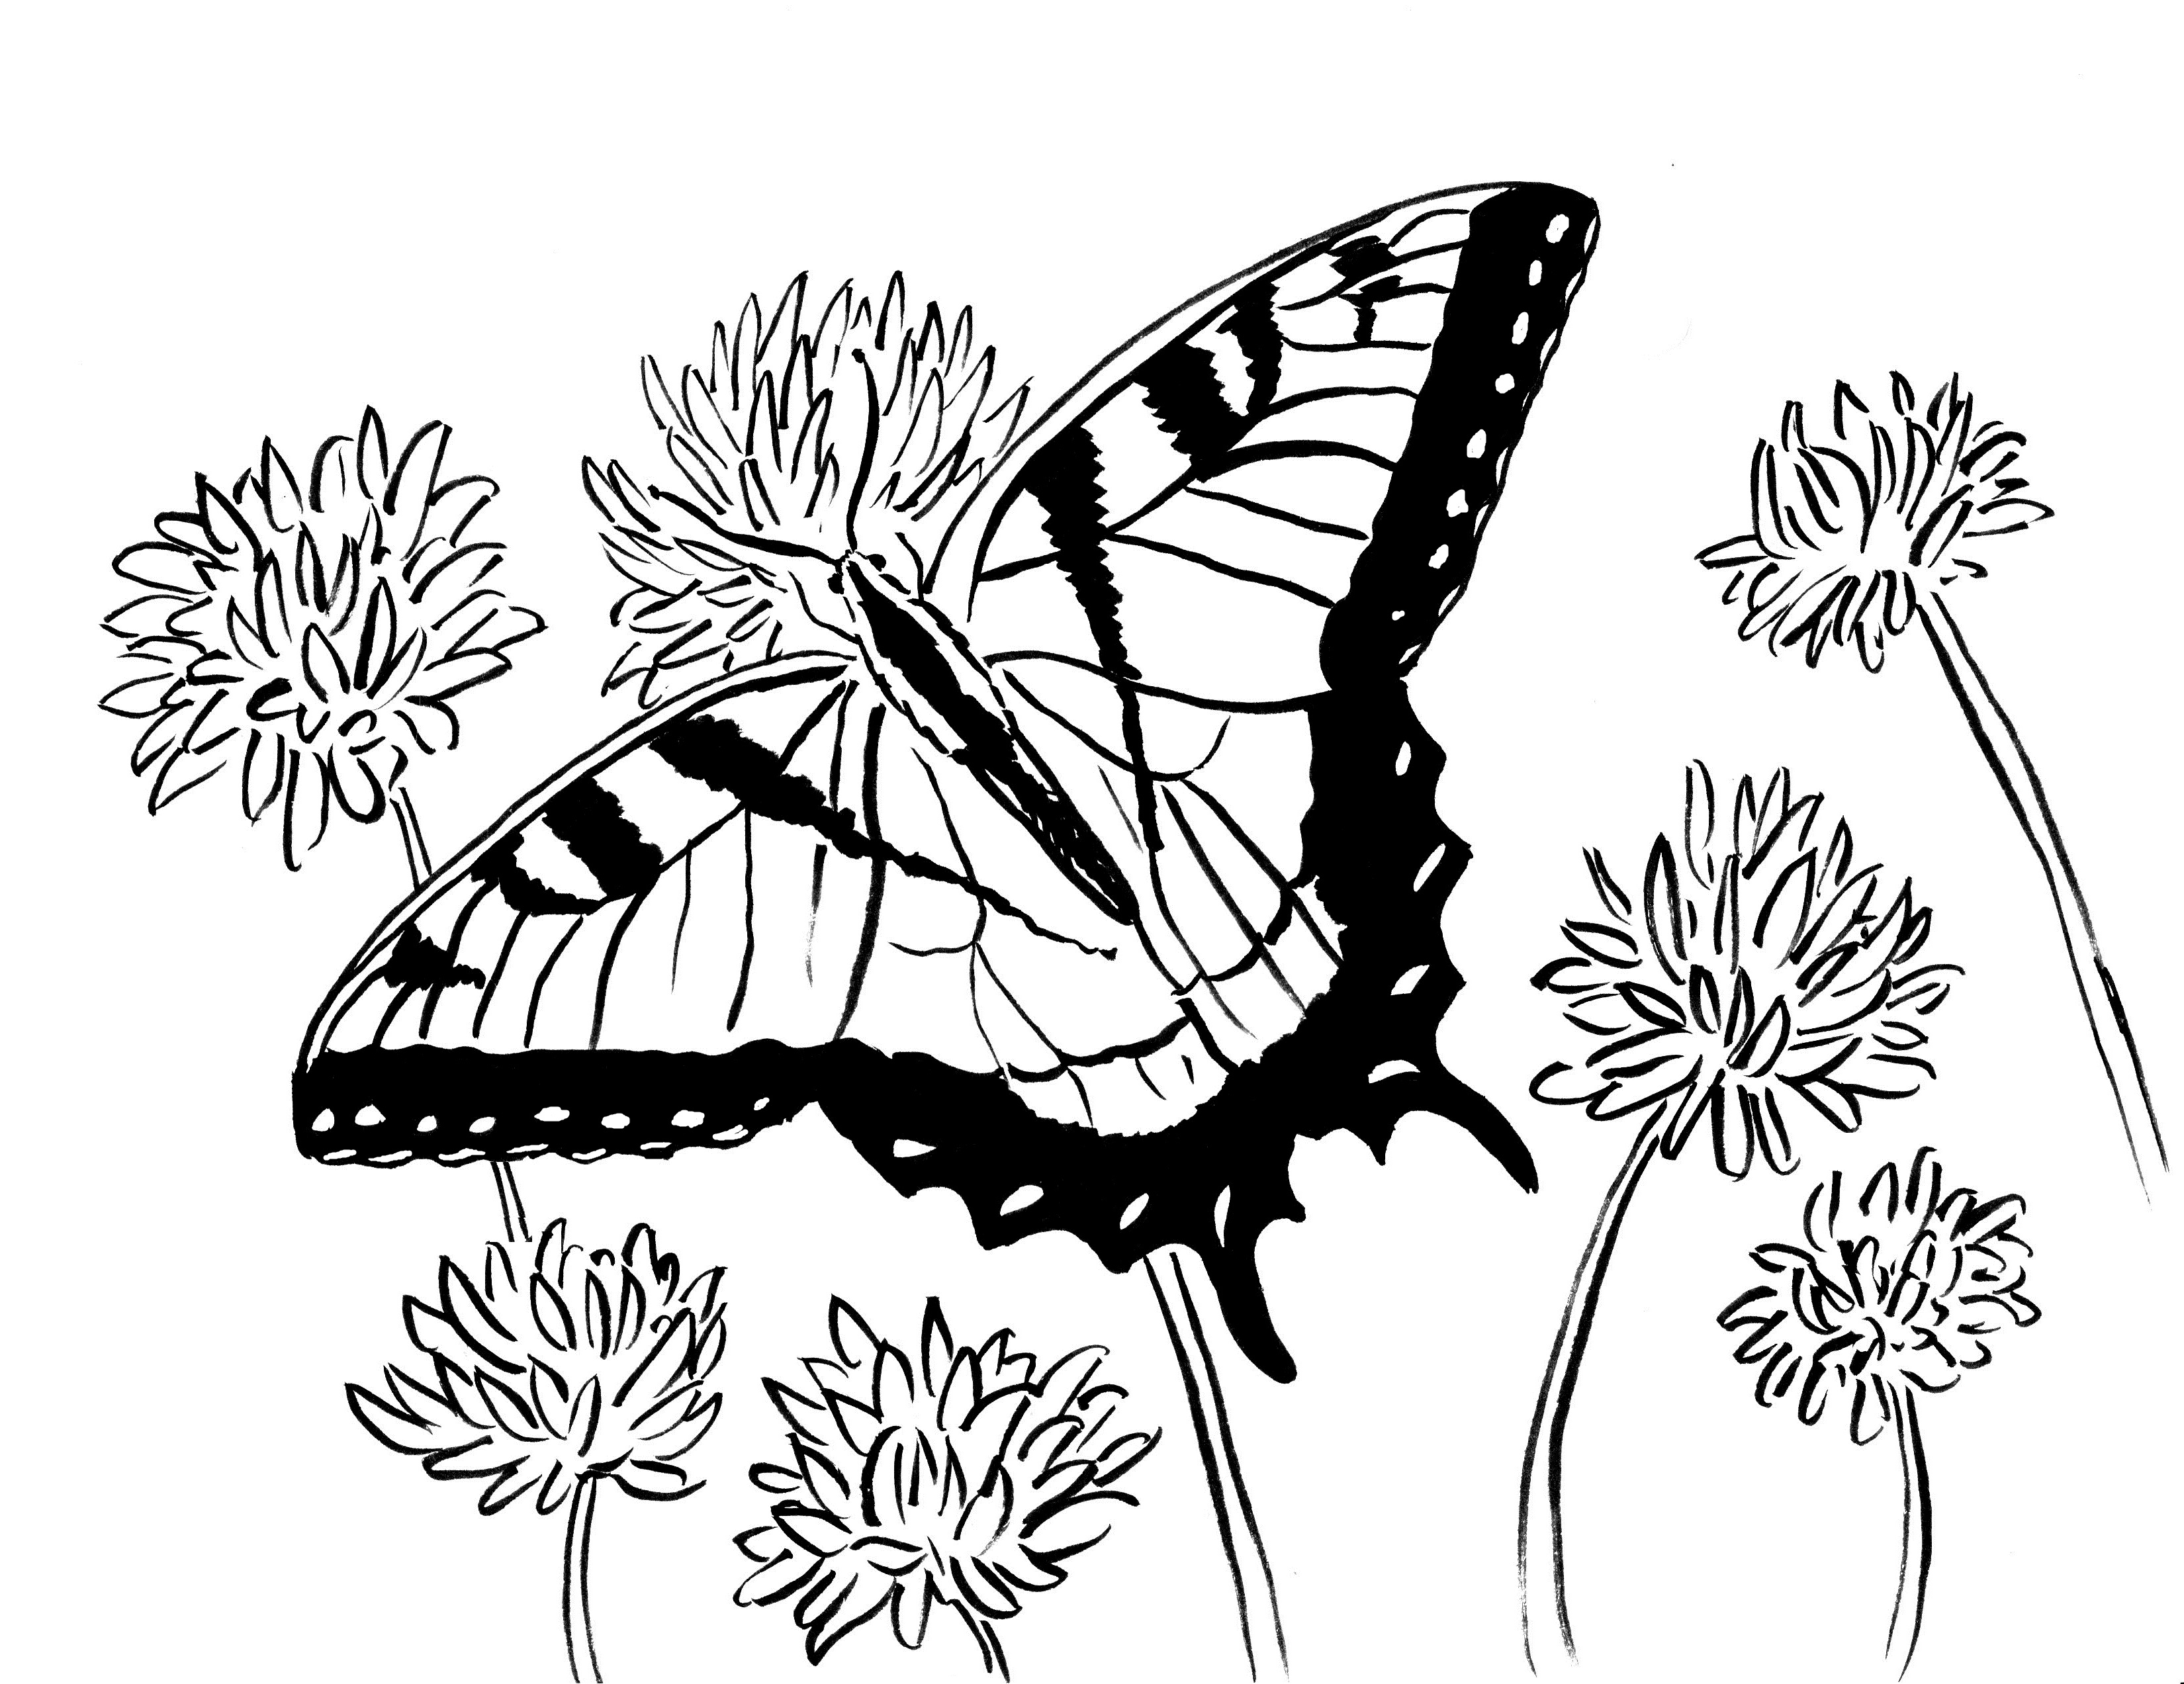 swallowtail butterfly coloring book pages - photo#3